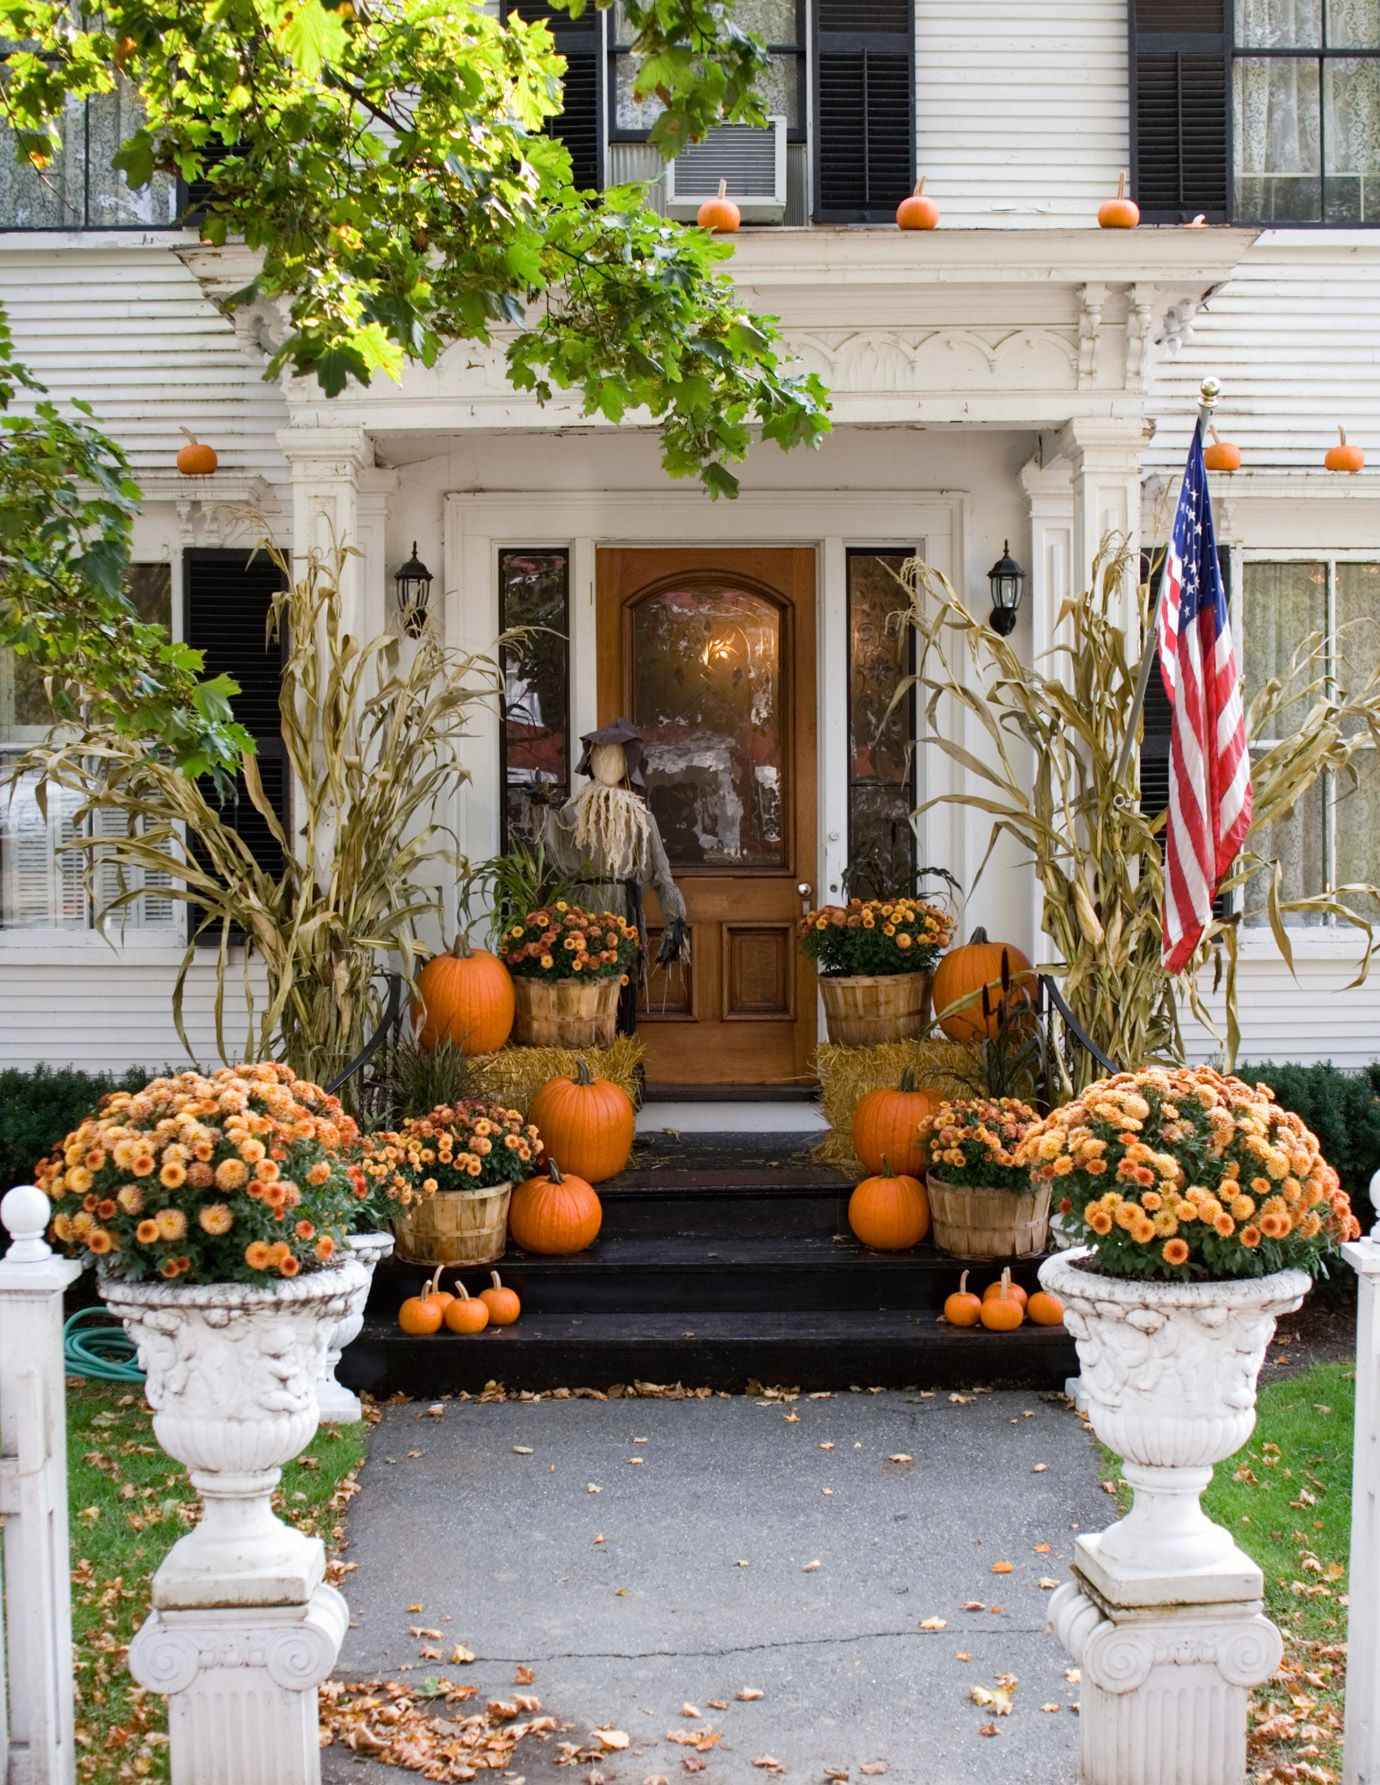 11 Elegant Ways To Decorate With Pumpkins This Fall Fall Decorations Porch Fall Outdoor Decor Front Porch Decorating